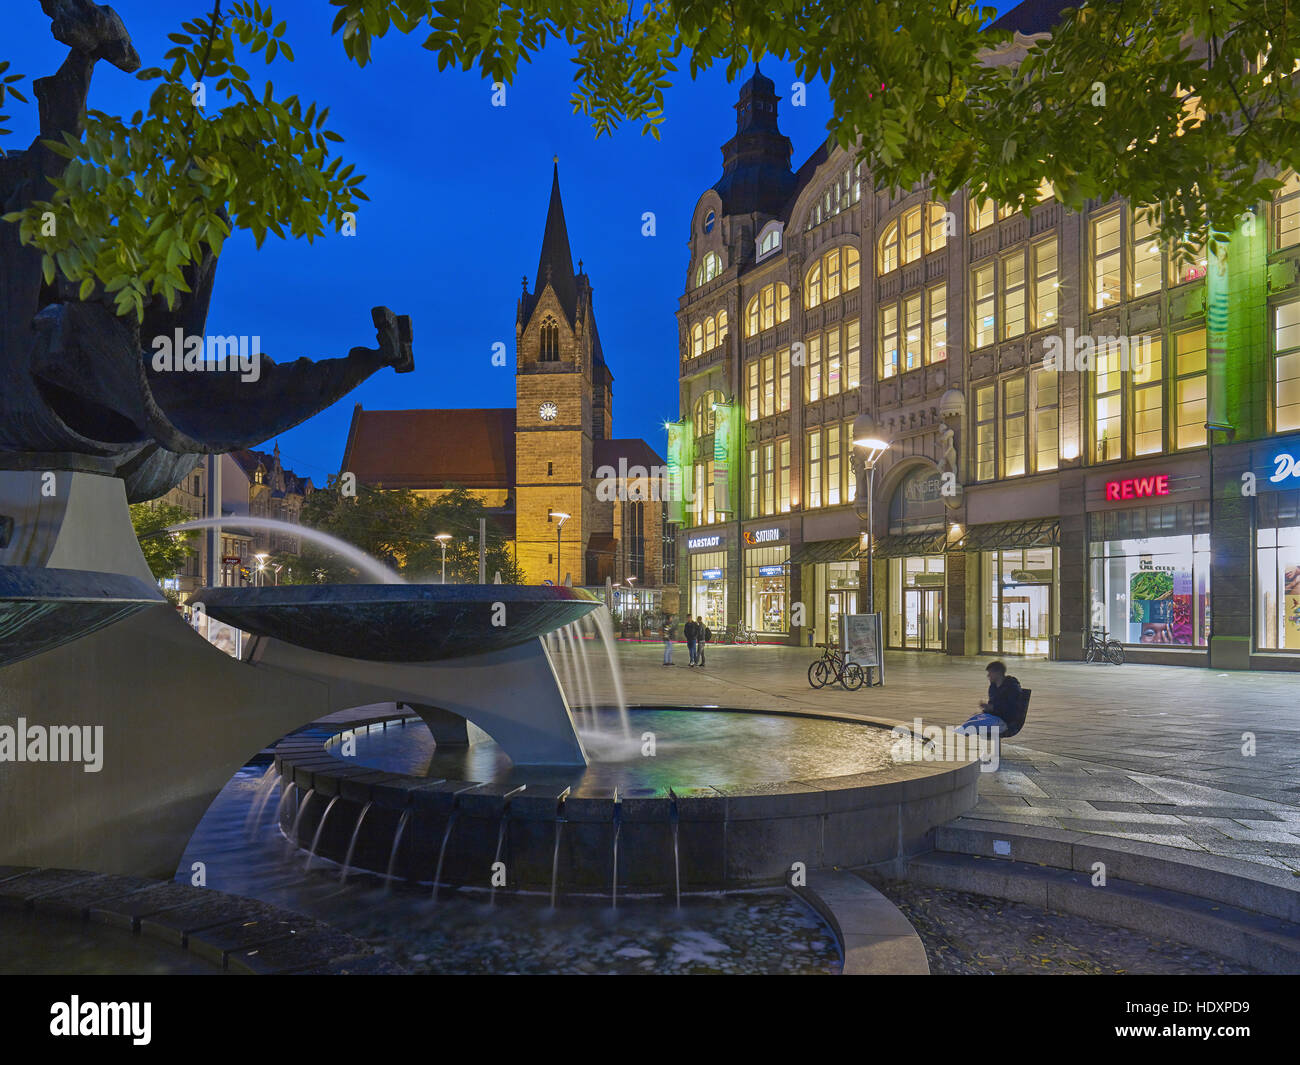 Shopping center Anger 1 and Merchants church in Erfurt, Thuringia, Germany - Stock Image